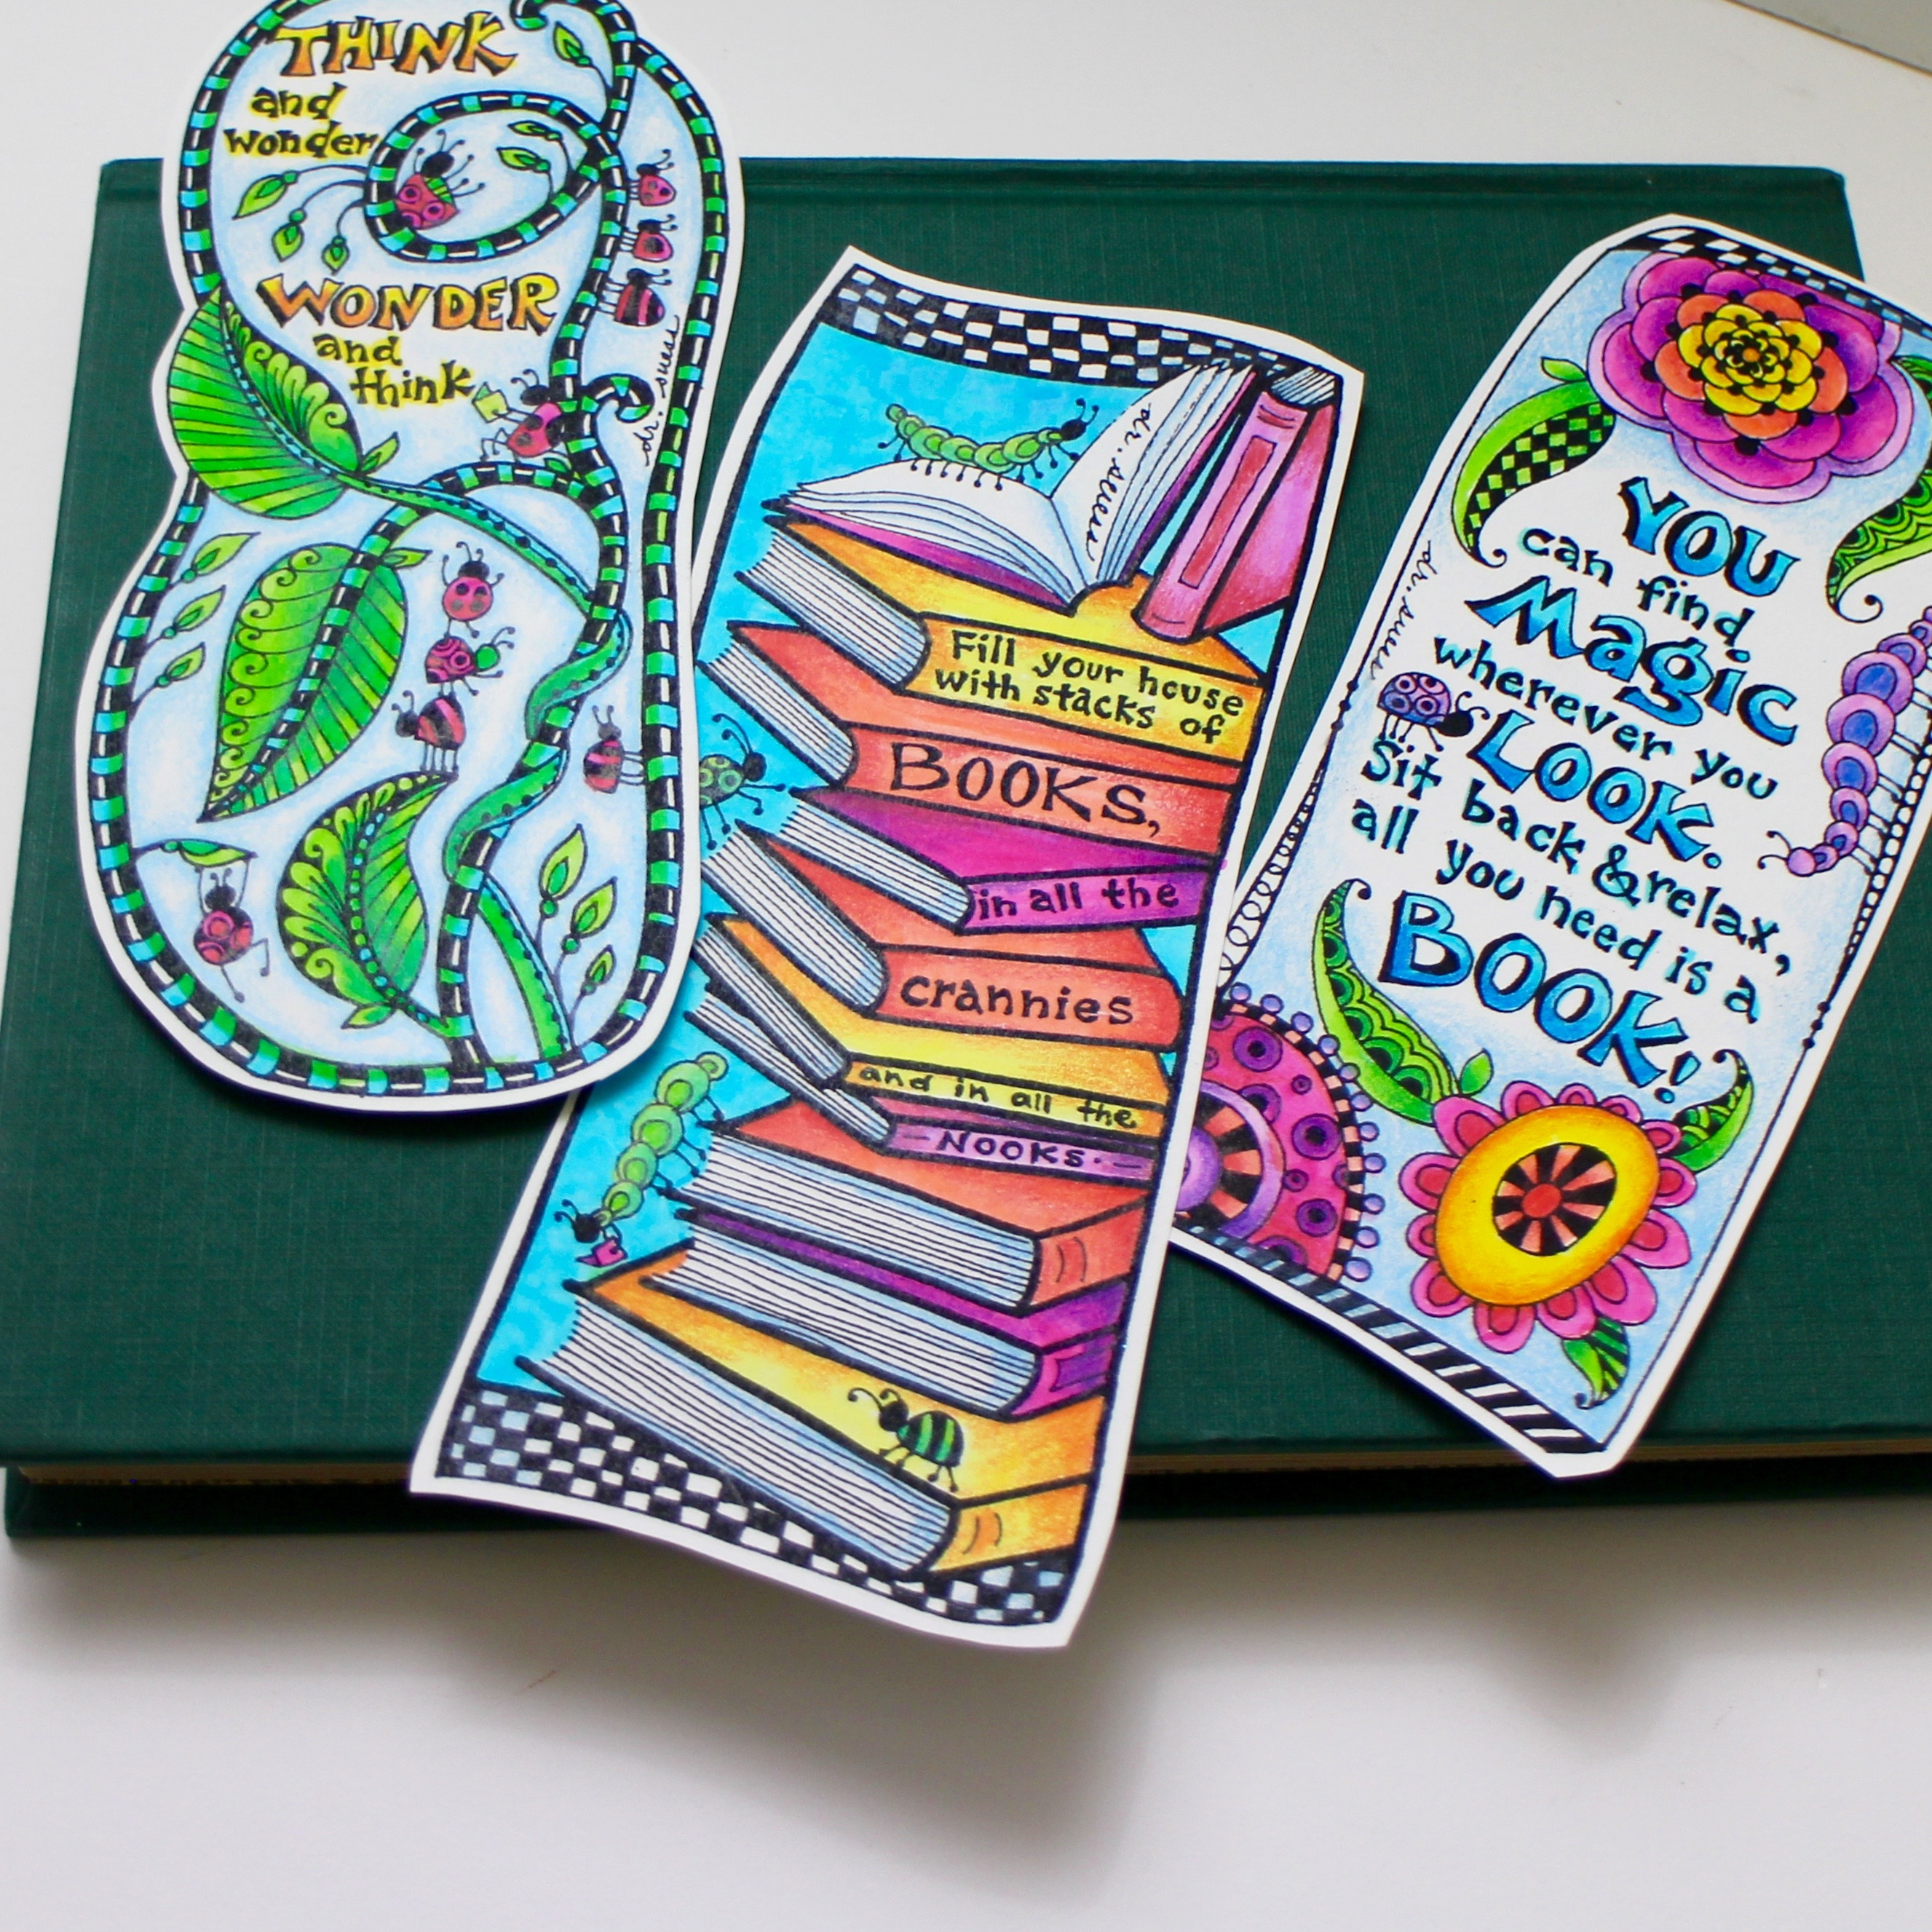 photo relating to Dr Seuss Printable Bookmarks referred to as Absolutely free Dr. Seuss Impressed Coloring Bookmarks for Countrywide Read through